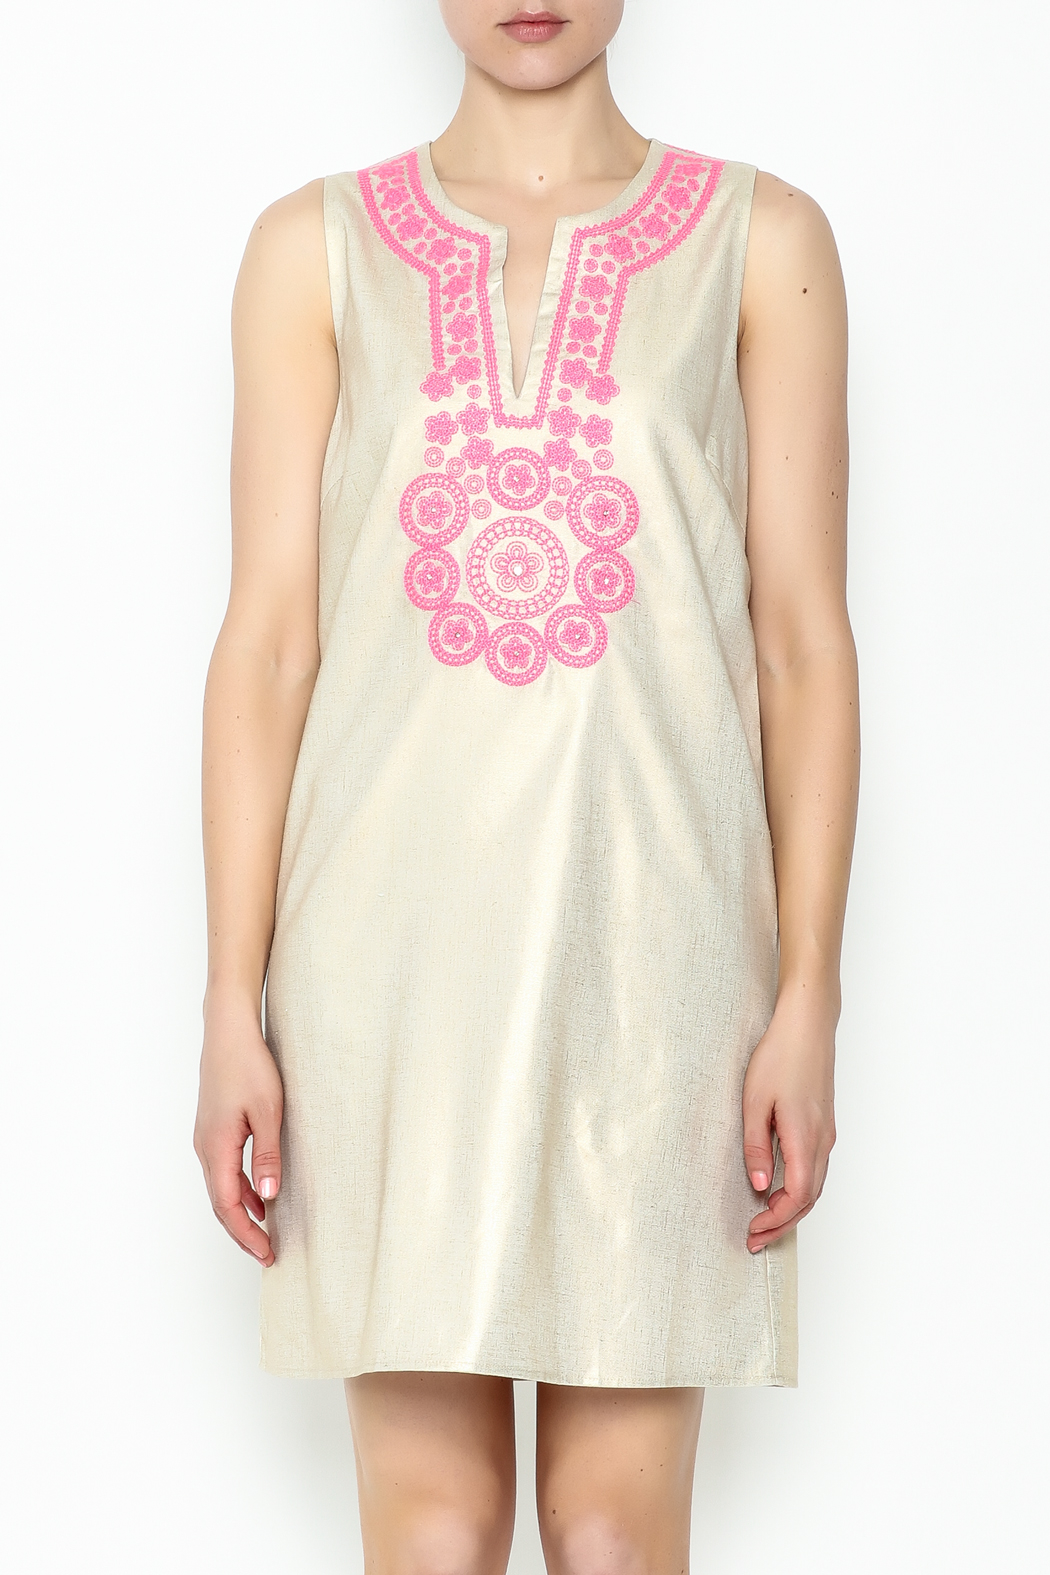 Julie Brown NYC Golden Gate Shift Dress - Front Full Image